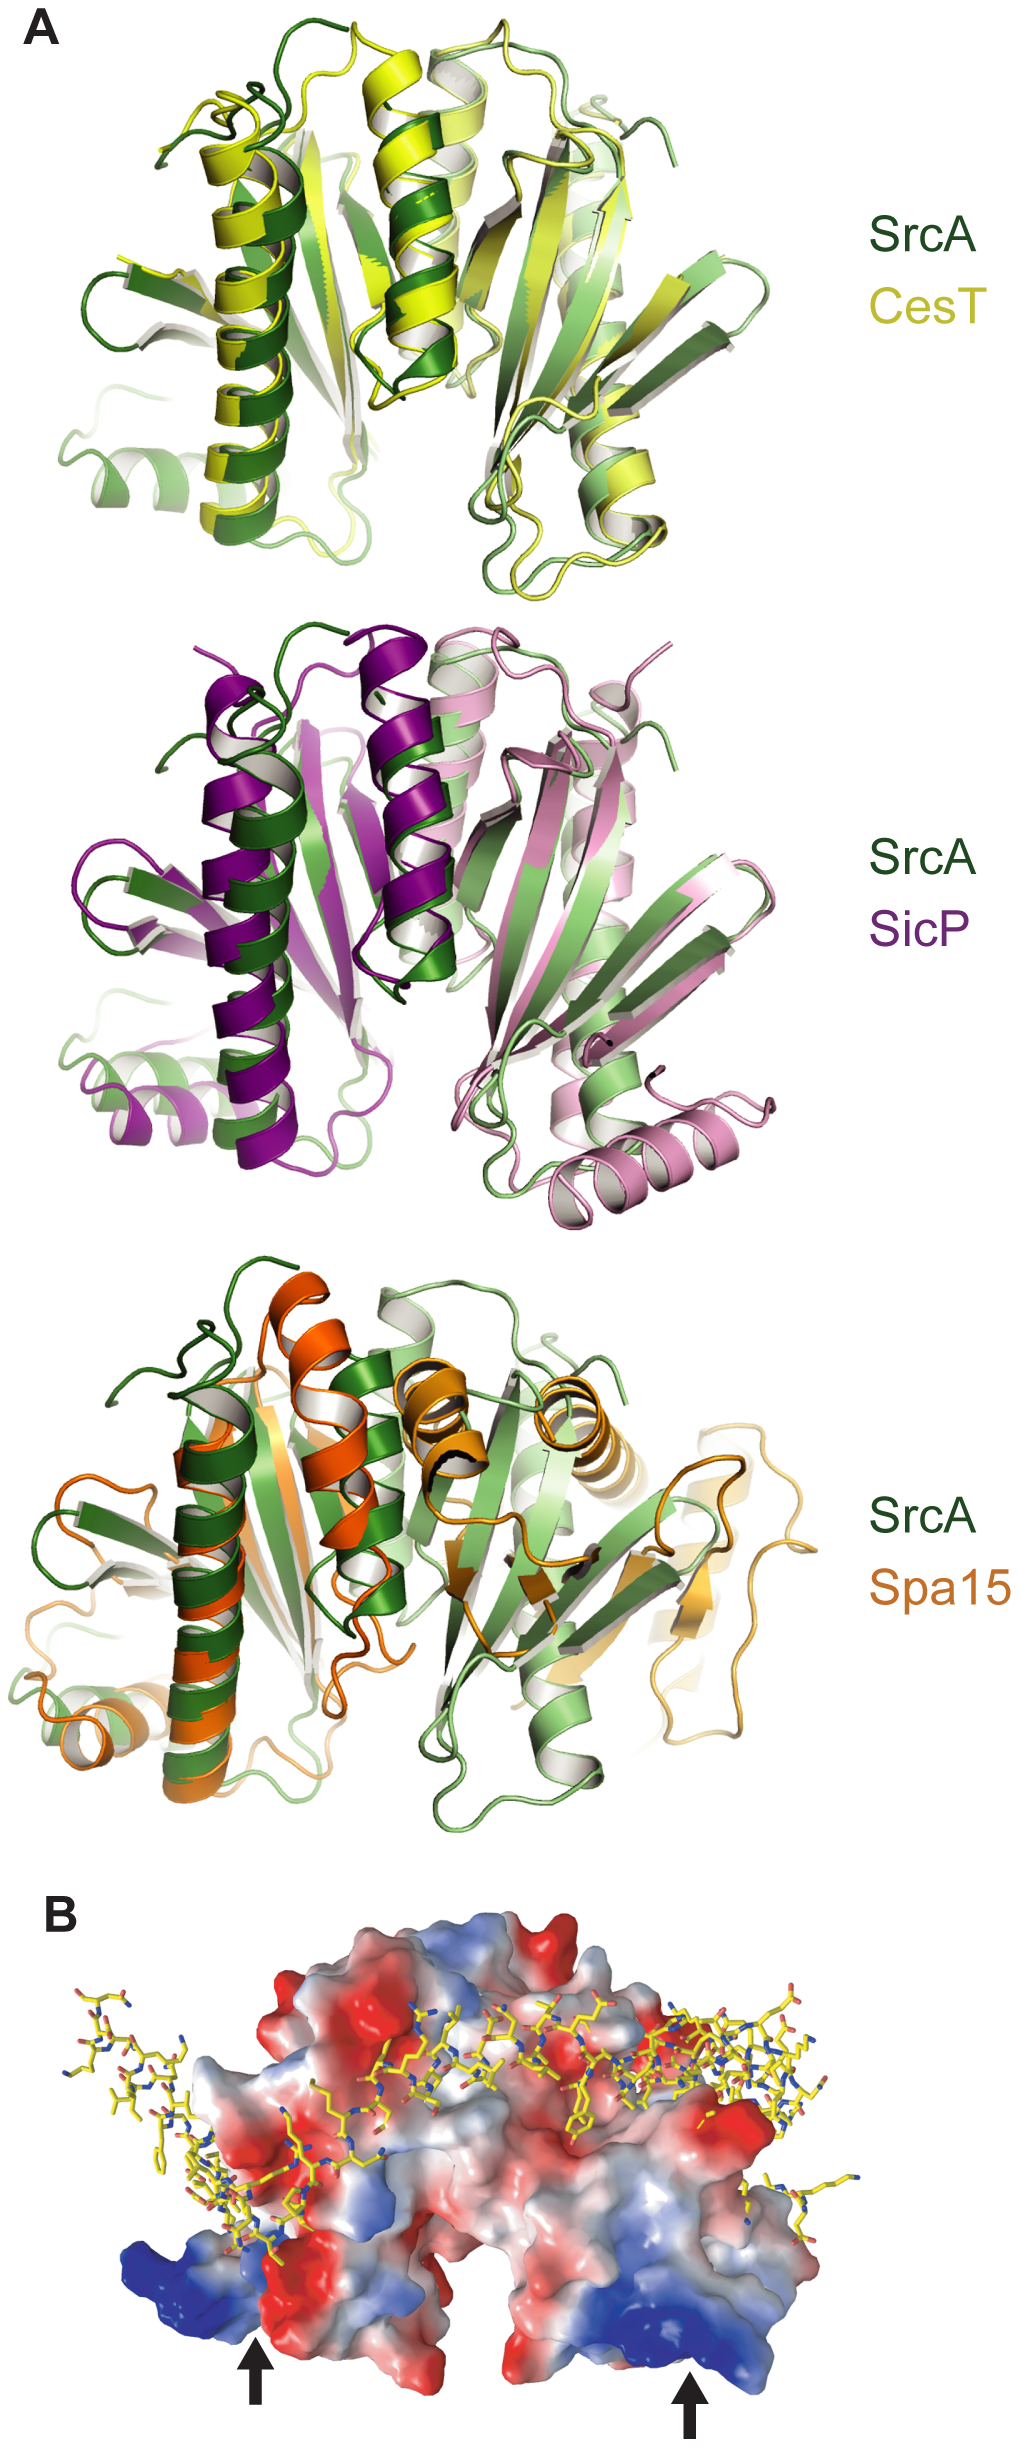 Structural comparison of SrcA, CesT and SicP.